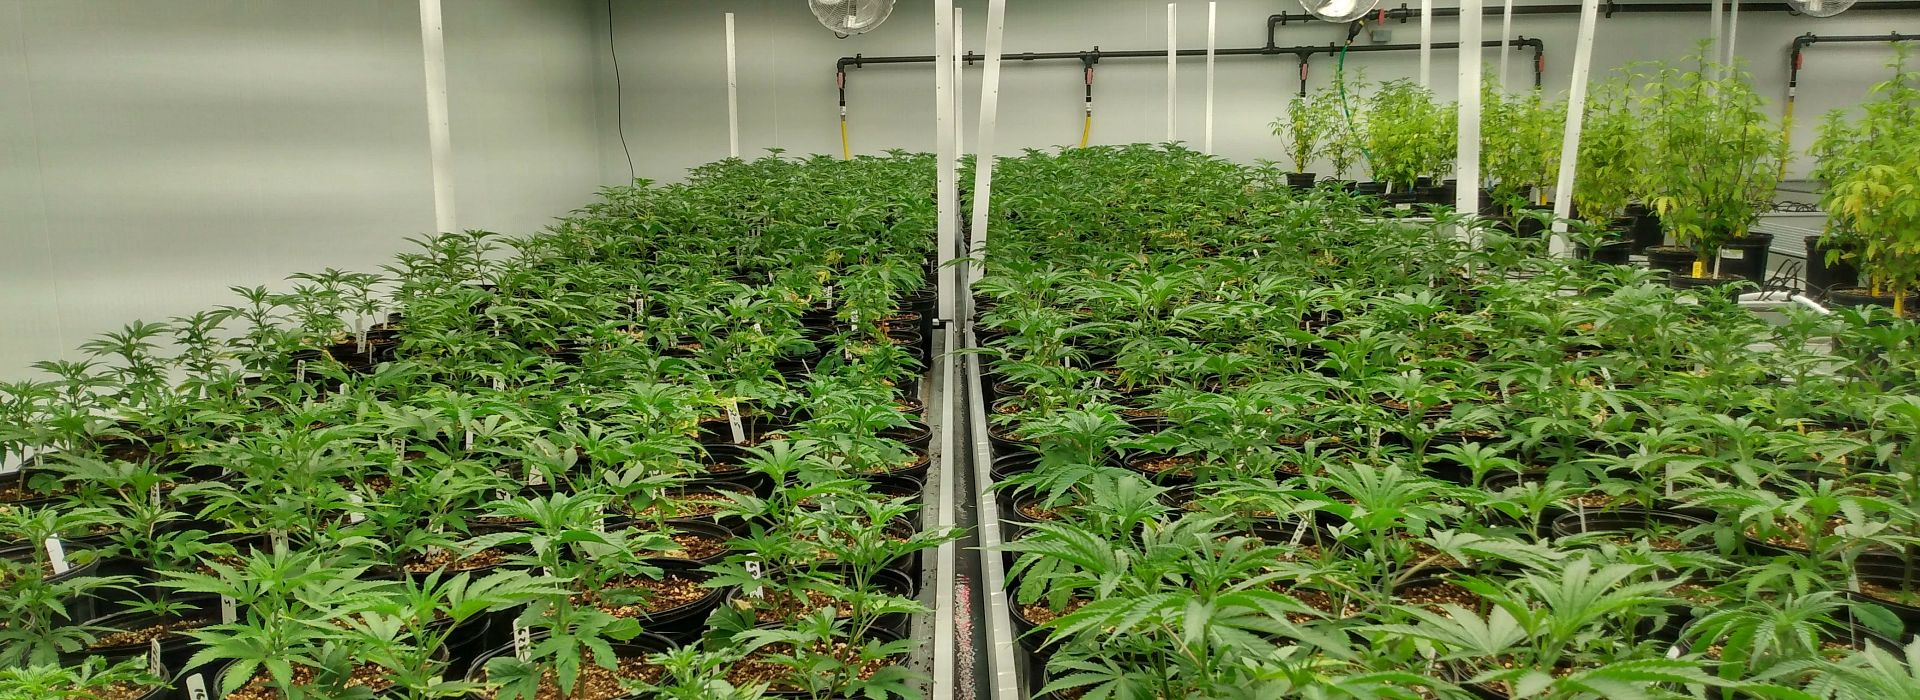 Cannabis Cultivation and Processing Program